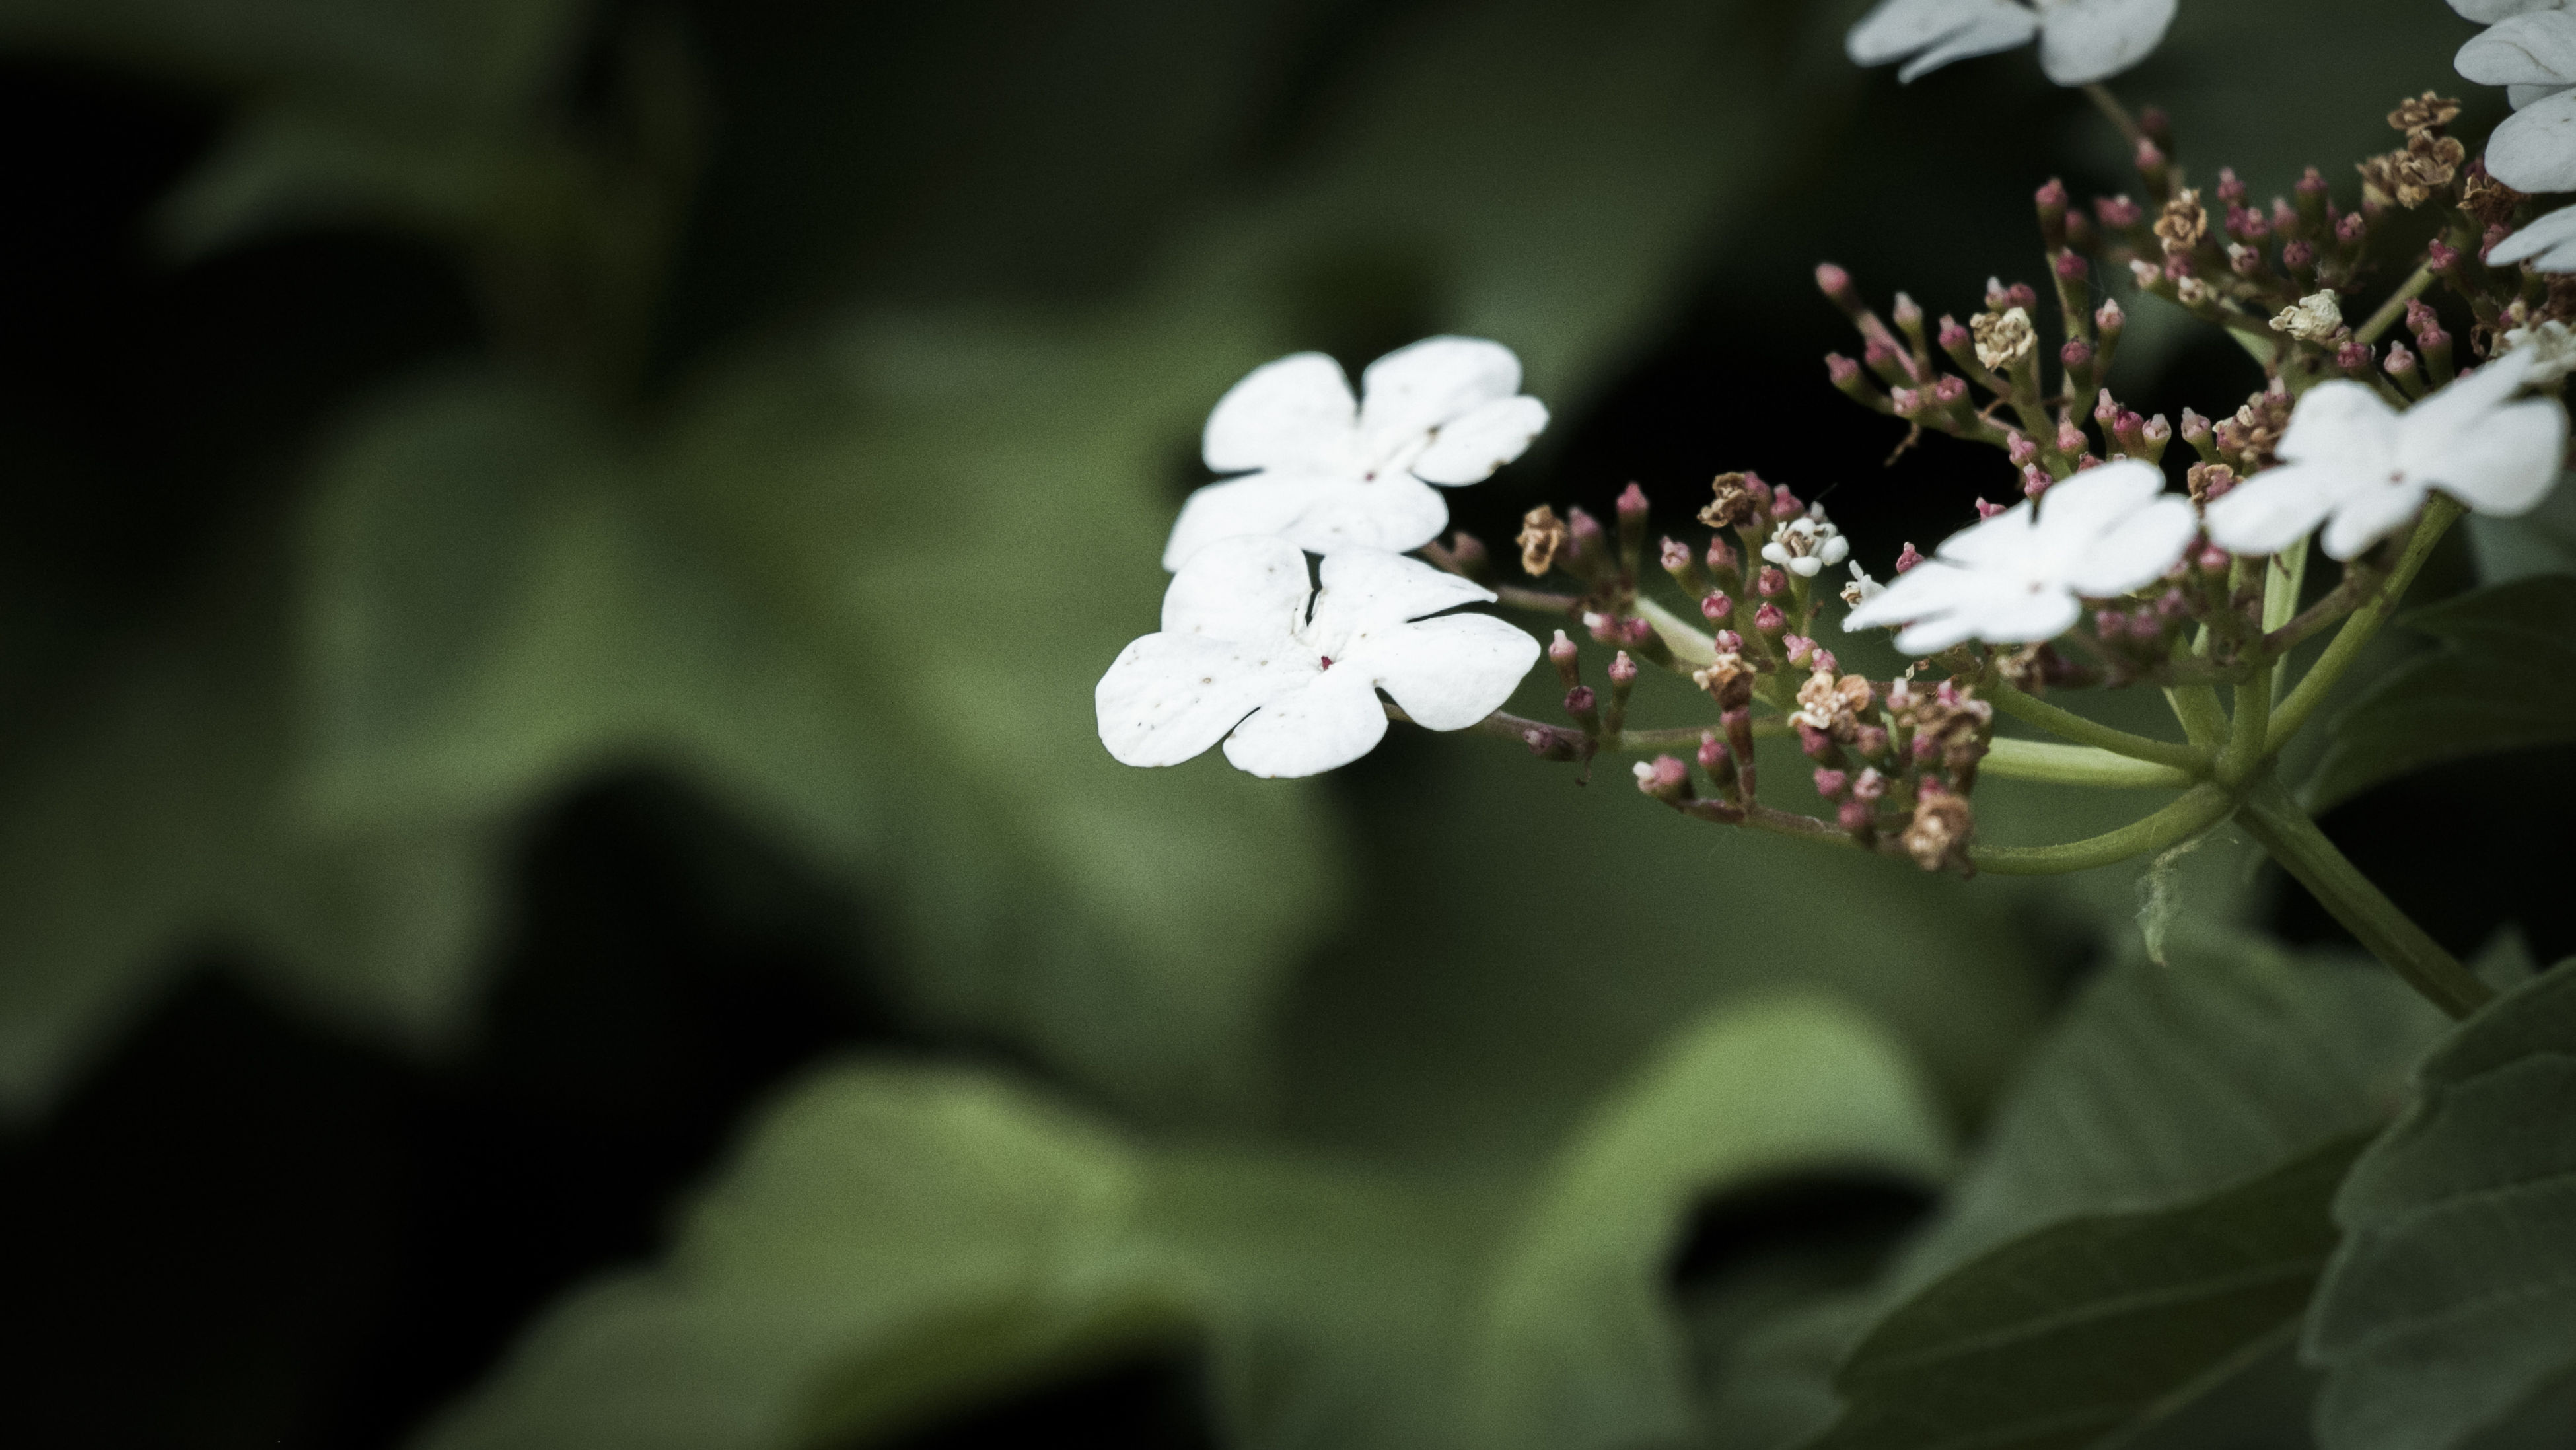 flower, freshness, growth, fragility, white color, petal, beauty in nature, flower head, nature, close-up, blooming, focus on foreground, leaf, plant, blossom, in bloom, selective focus, stem, springtime, outdoors